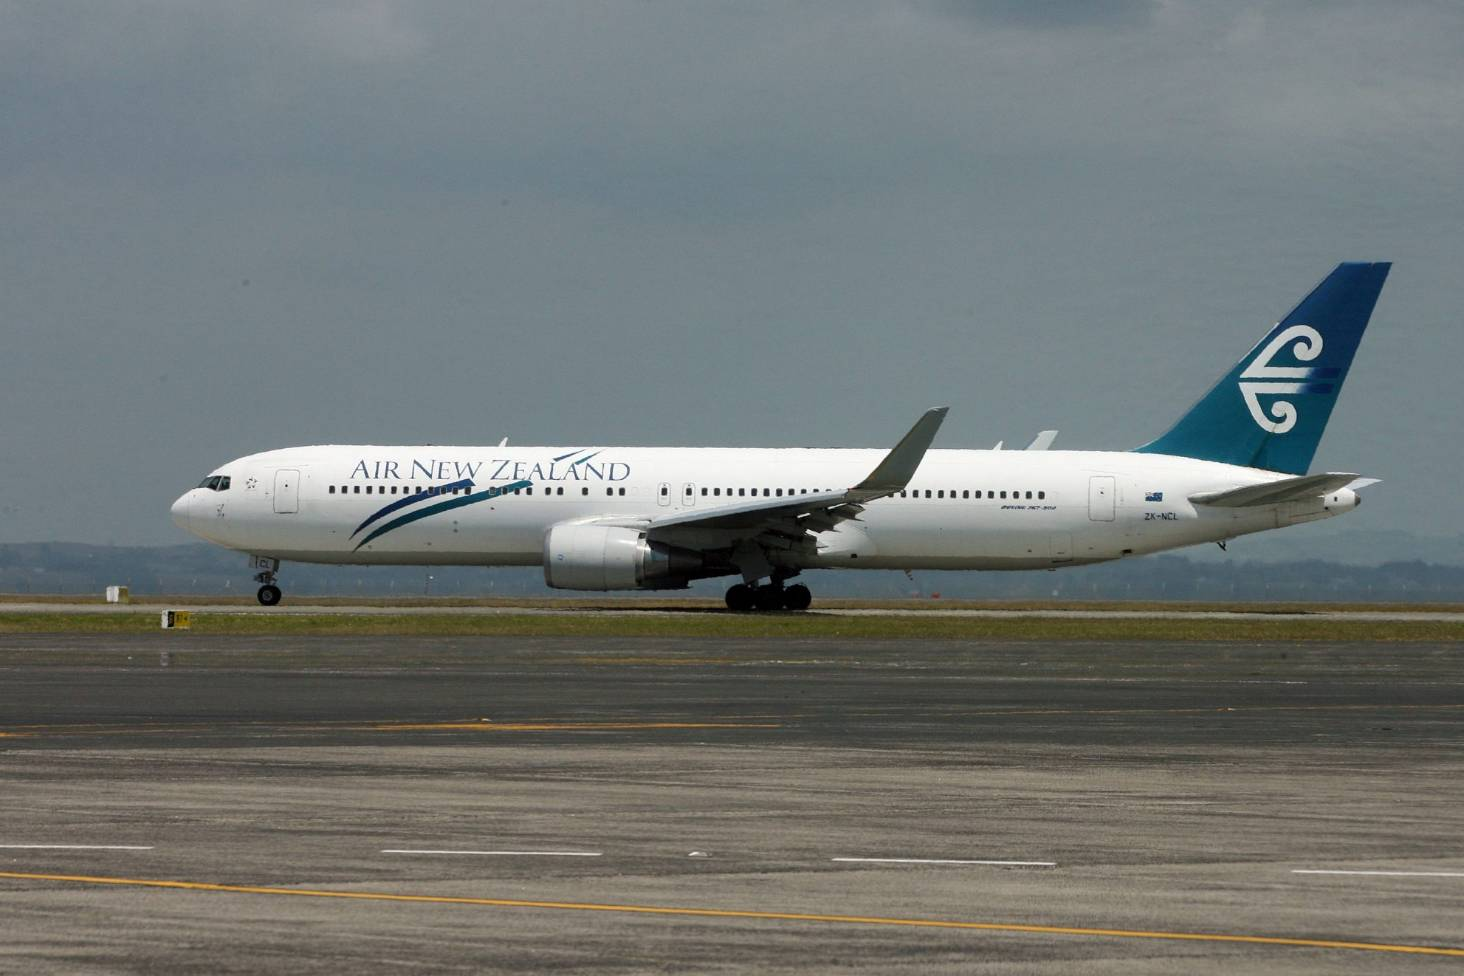 Air New Zealand Boeing 767 was a good honest plane, chief pilot says